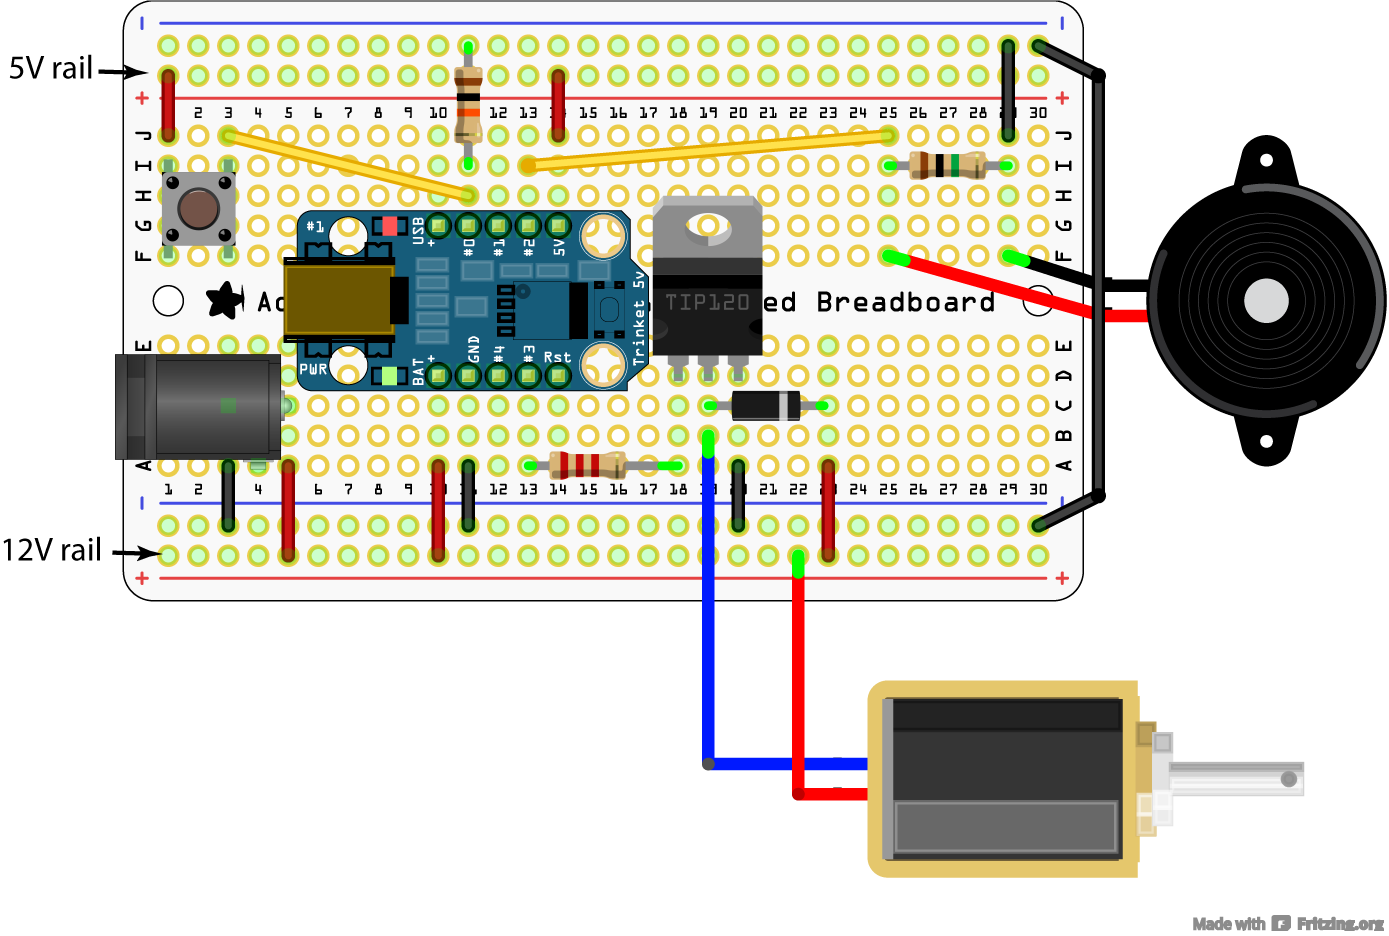 trinket_Adafruit_Secret_Knock_Layout.png